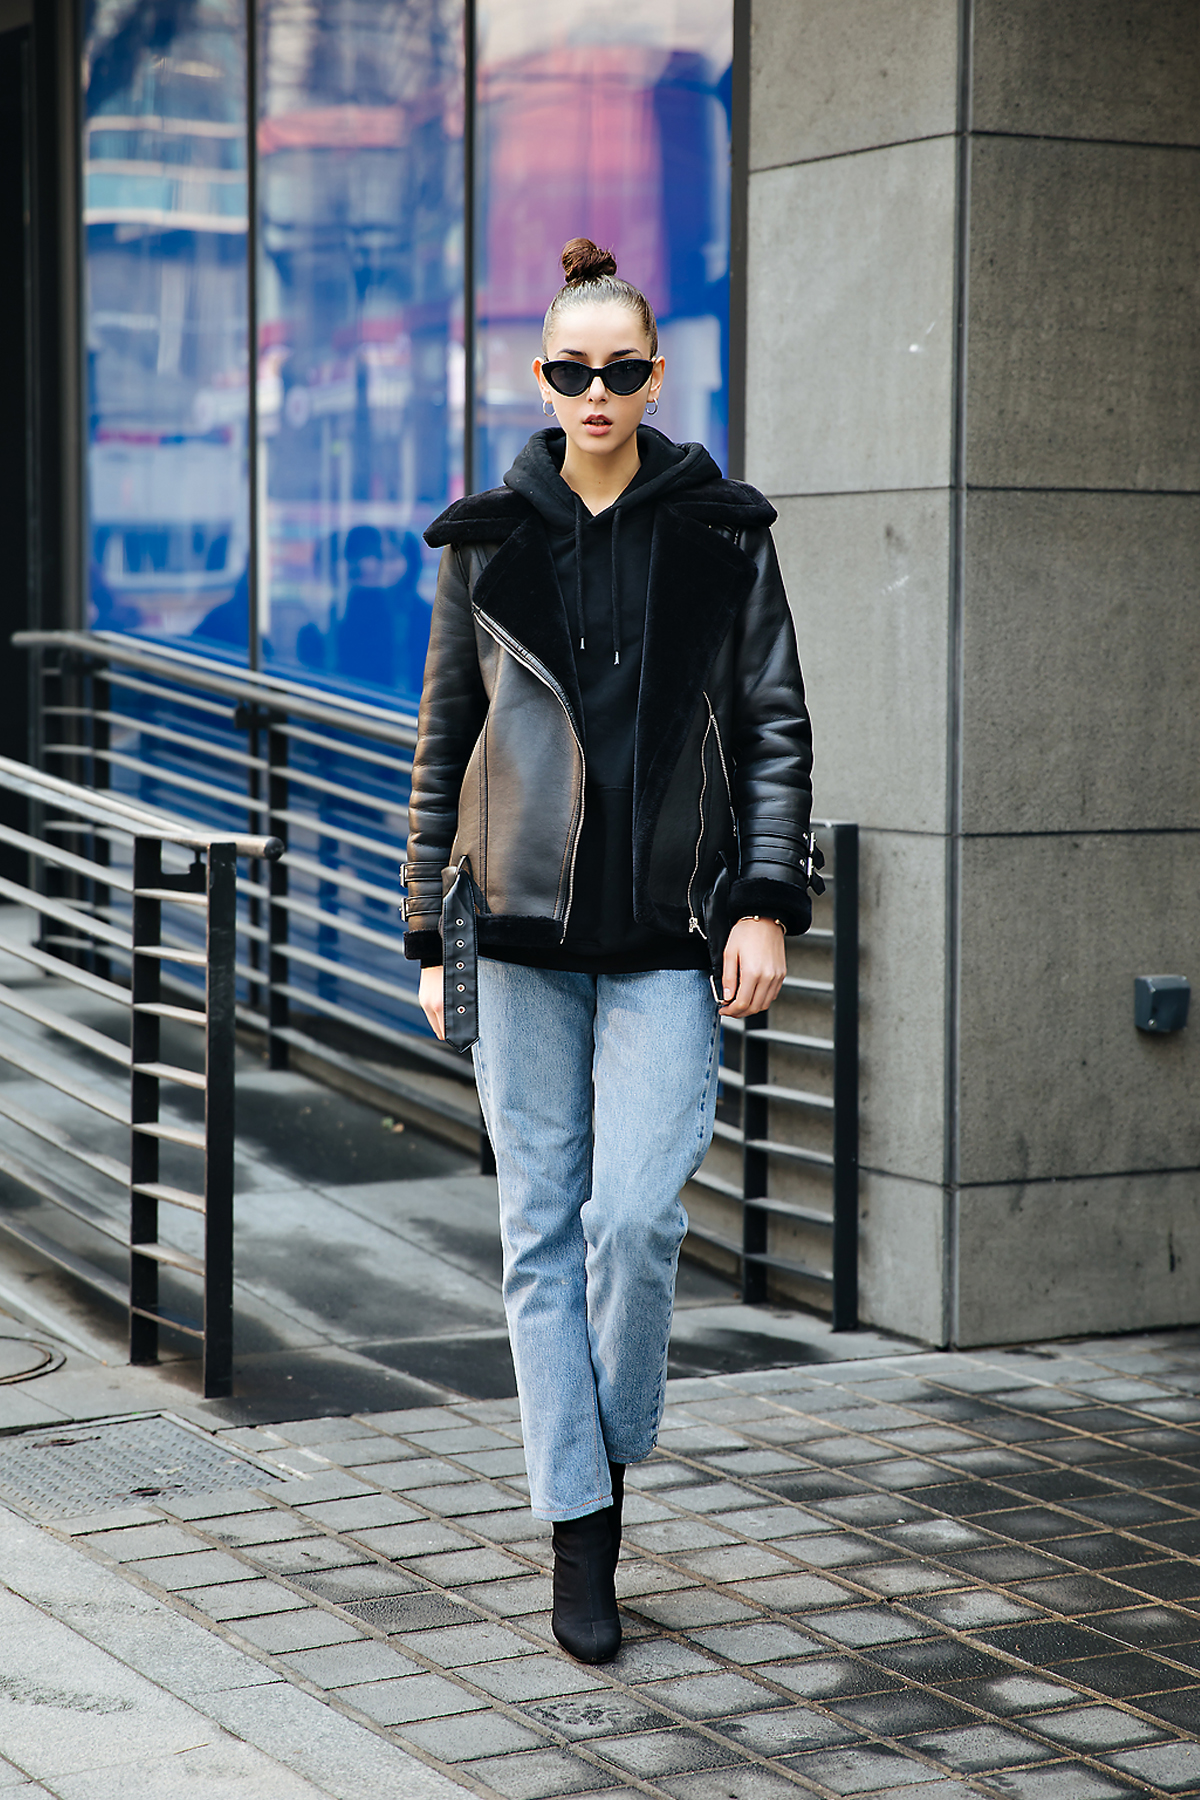 Gabriela Acquaviva Gisler, Street style women winter 2017-2018 in seoul